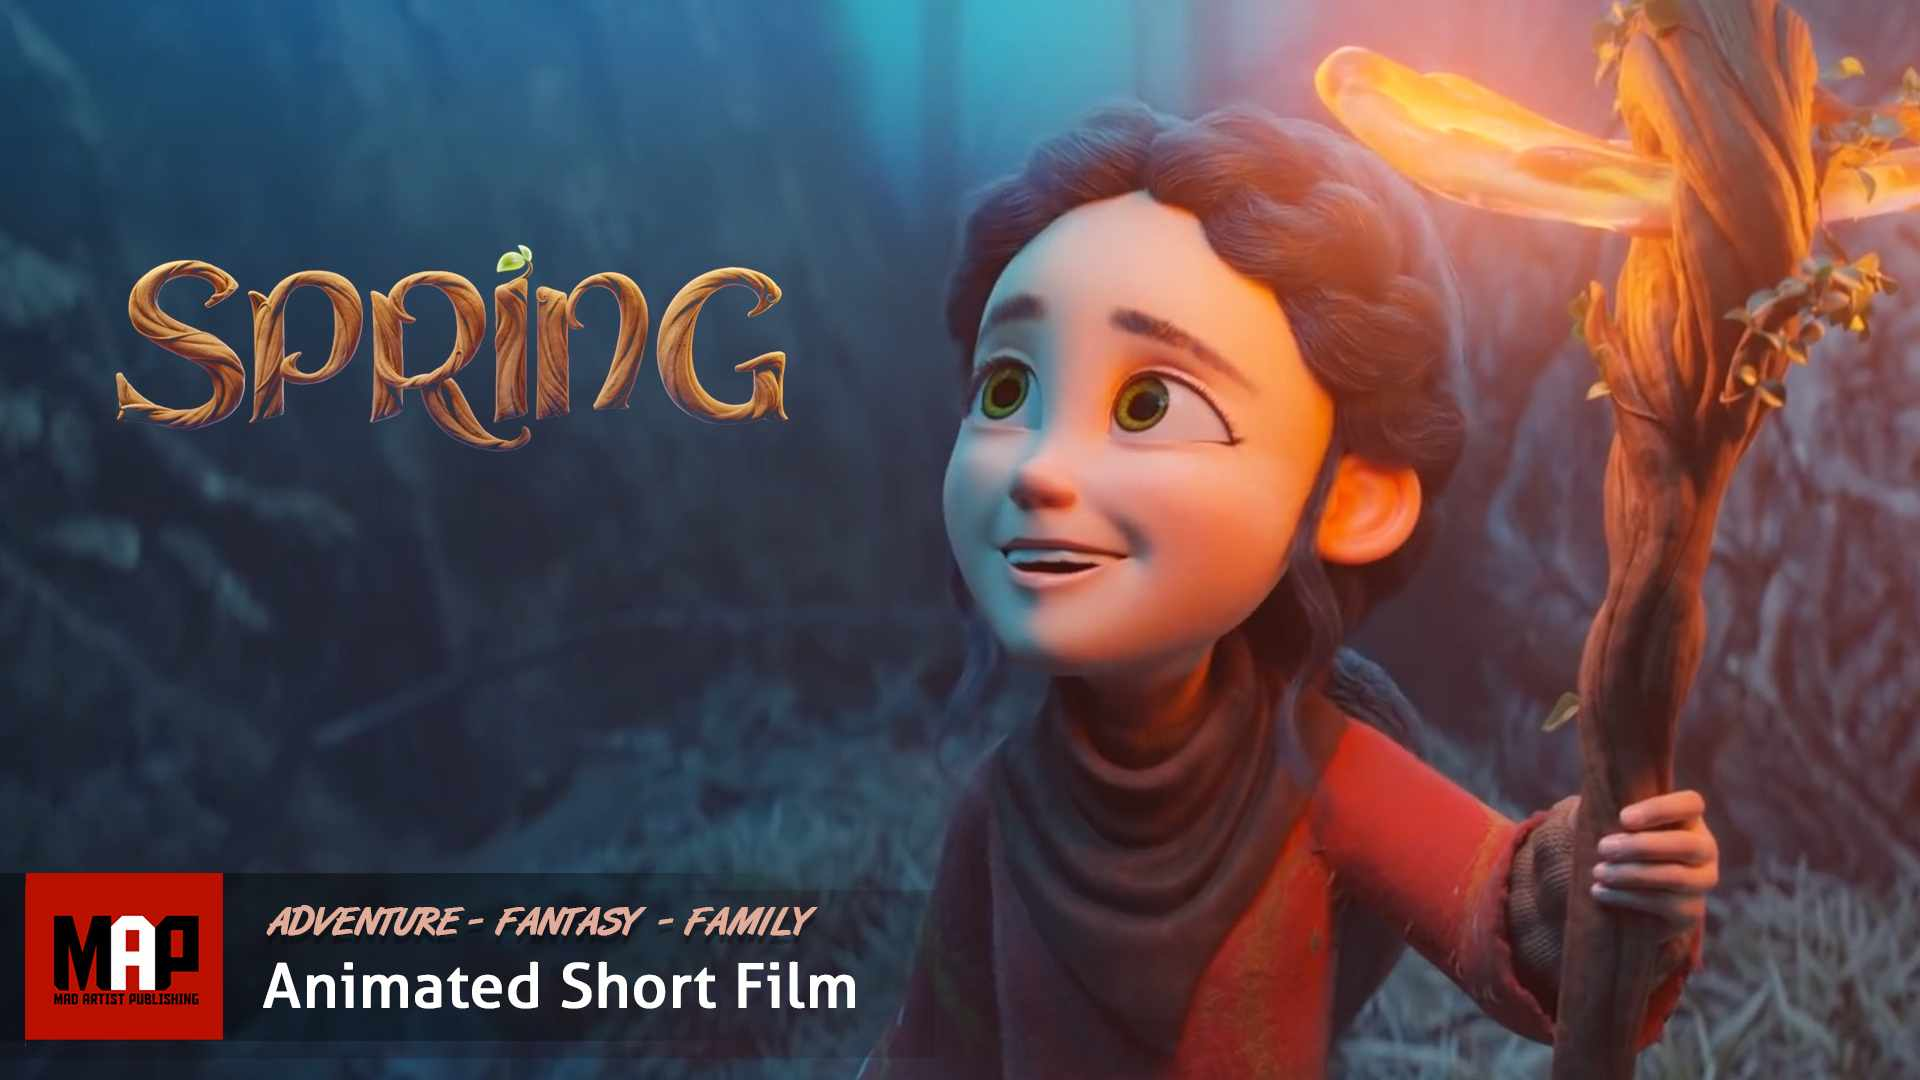 Cute Adventure Fantasy CGI 3d Animated Short Film ** SPRING ** by Blender Foundation